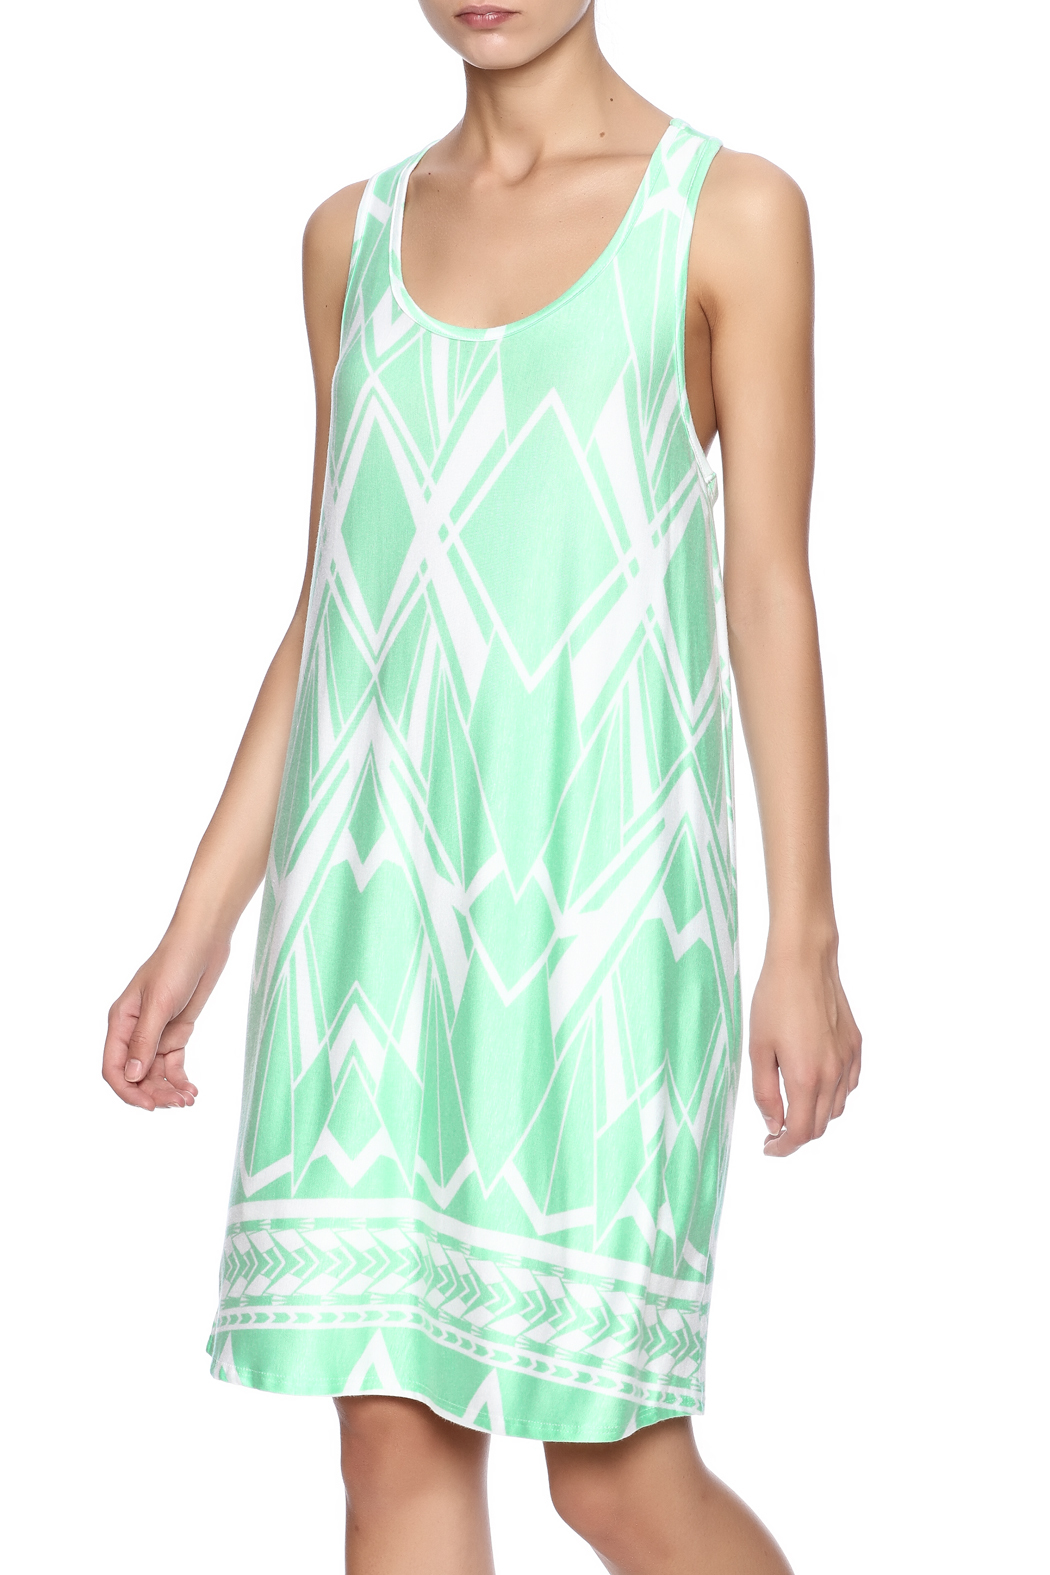 Fantastic Fawn Printed Mint Dress - Front Cropped Image